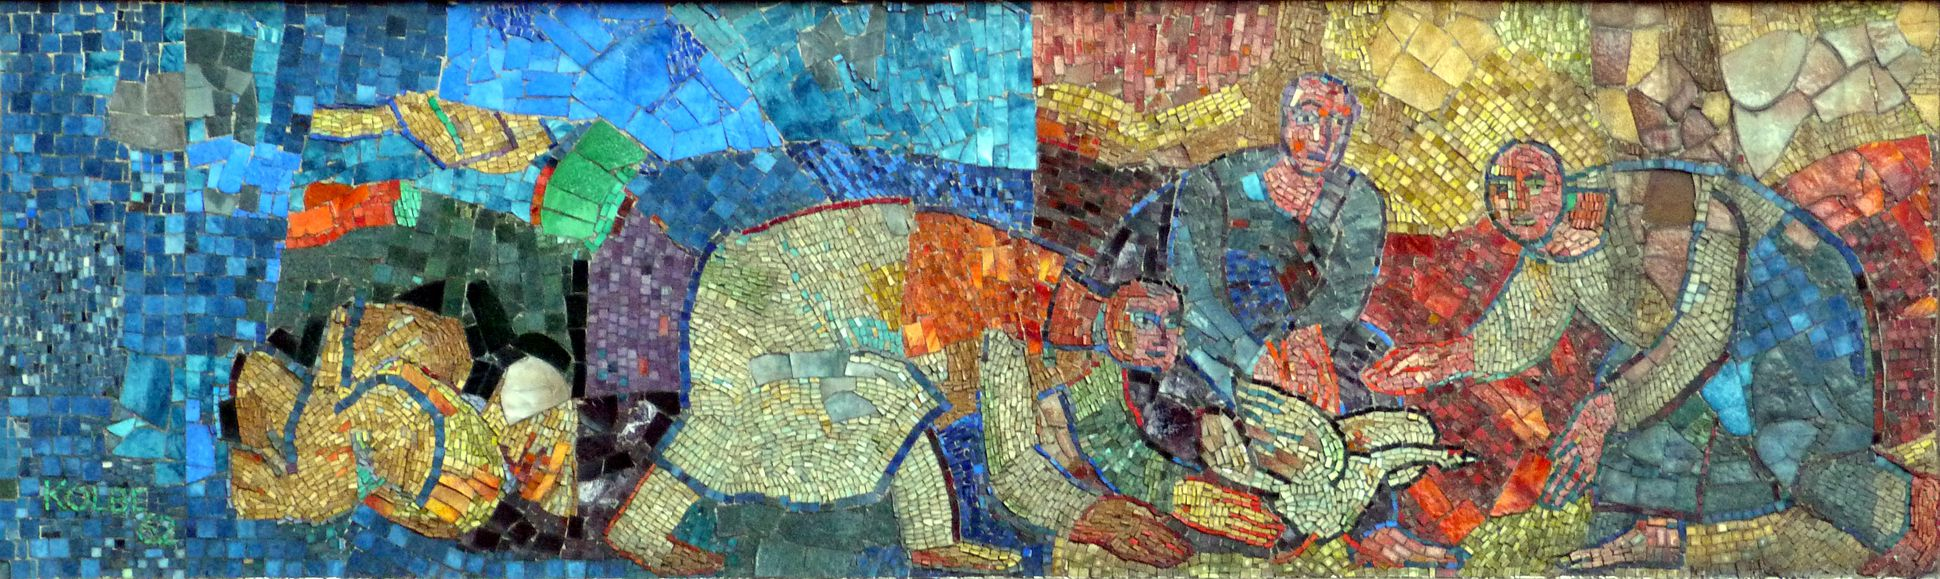 Mosaic on the Main Market (Hauptmarkt) in Nuremberg Starting scenes of the north mosaic strip with escaping goose